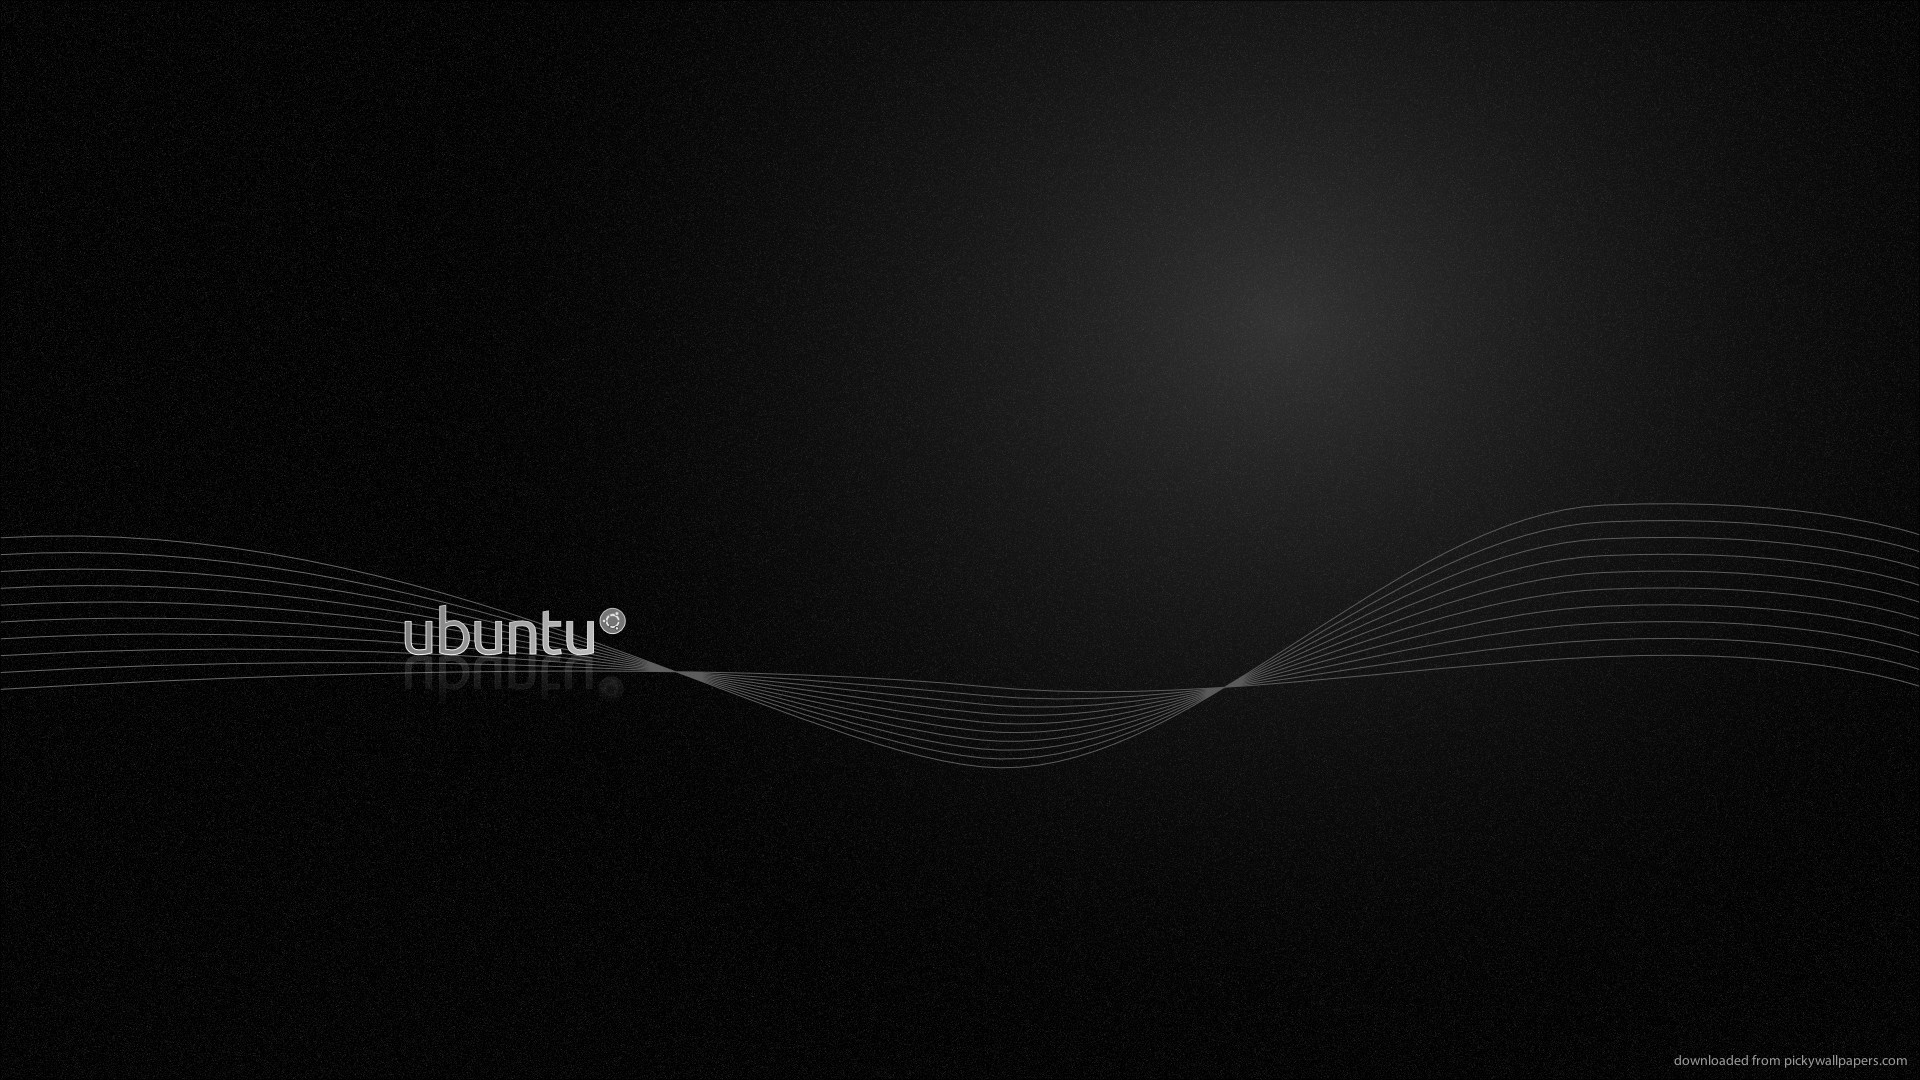 HD Ubuntu Black Wallpaper 1920x1080